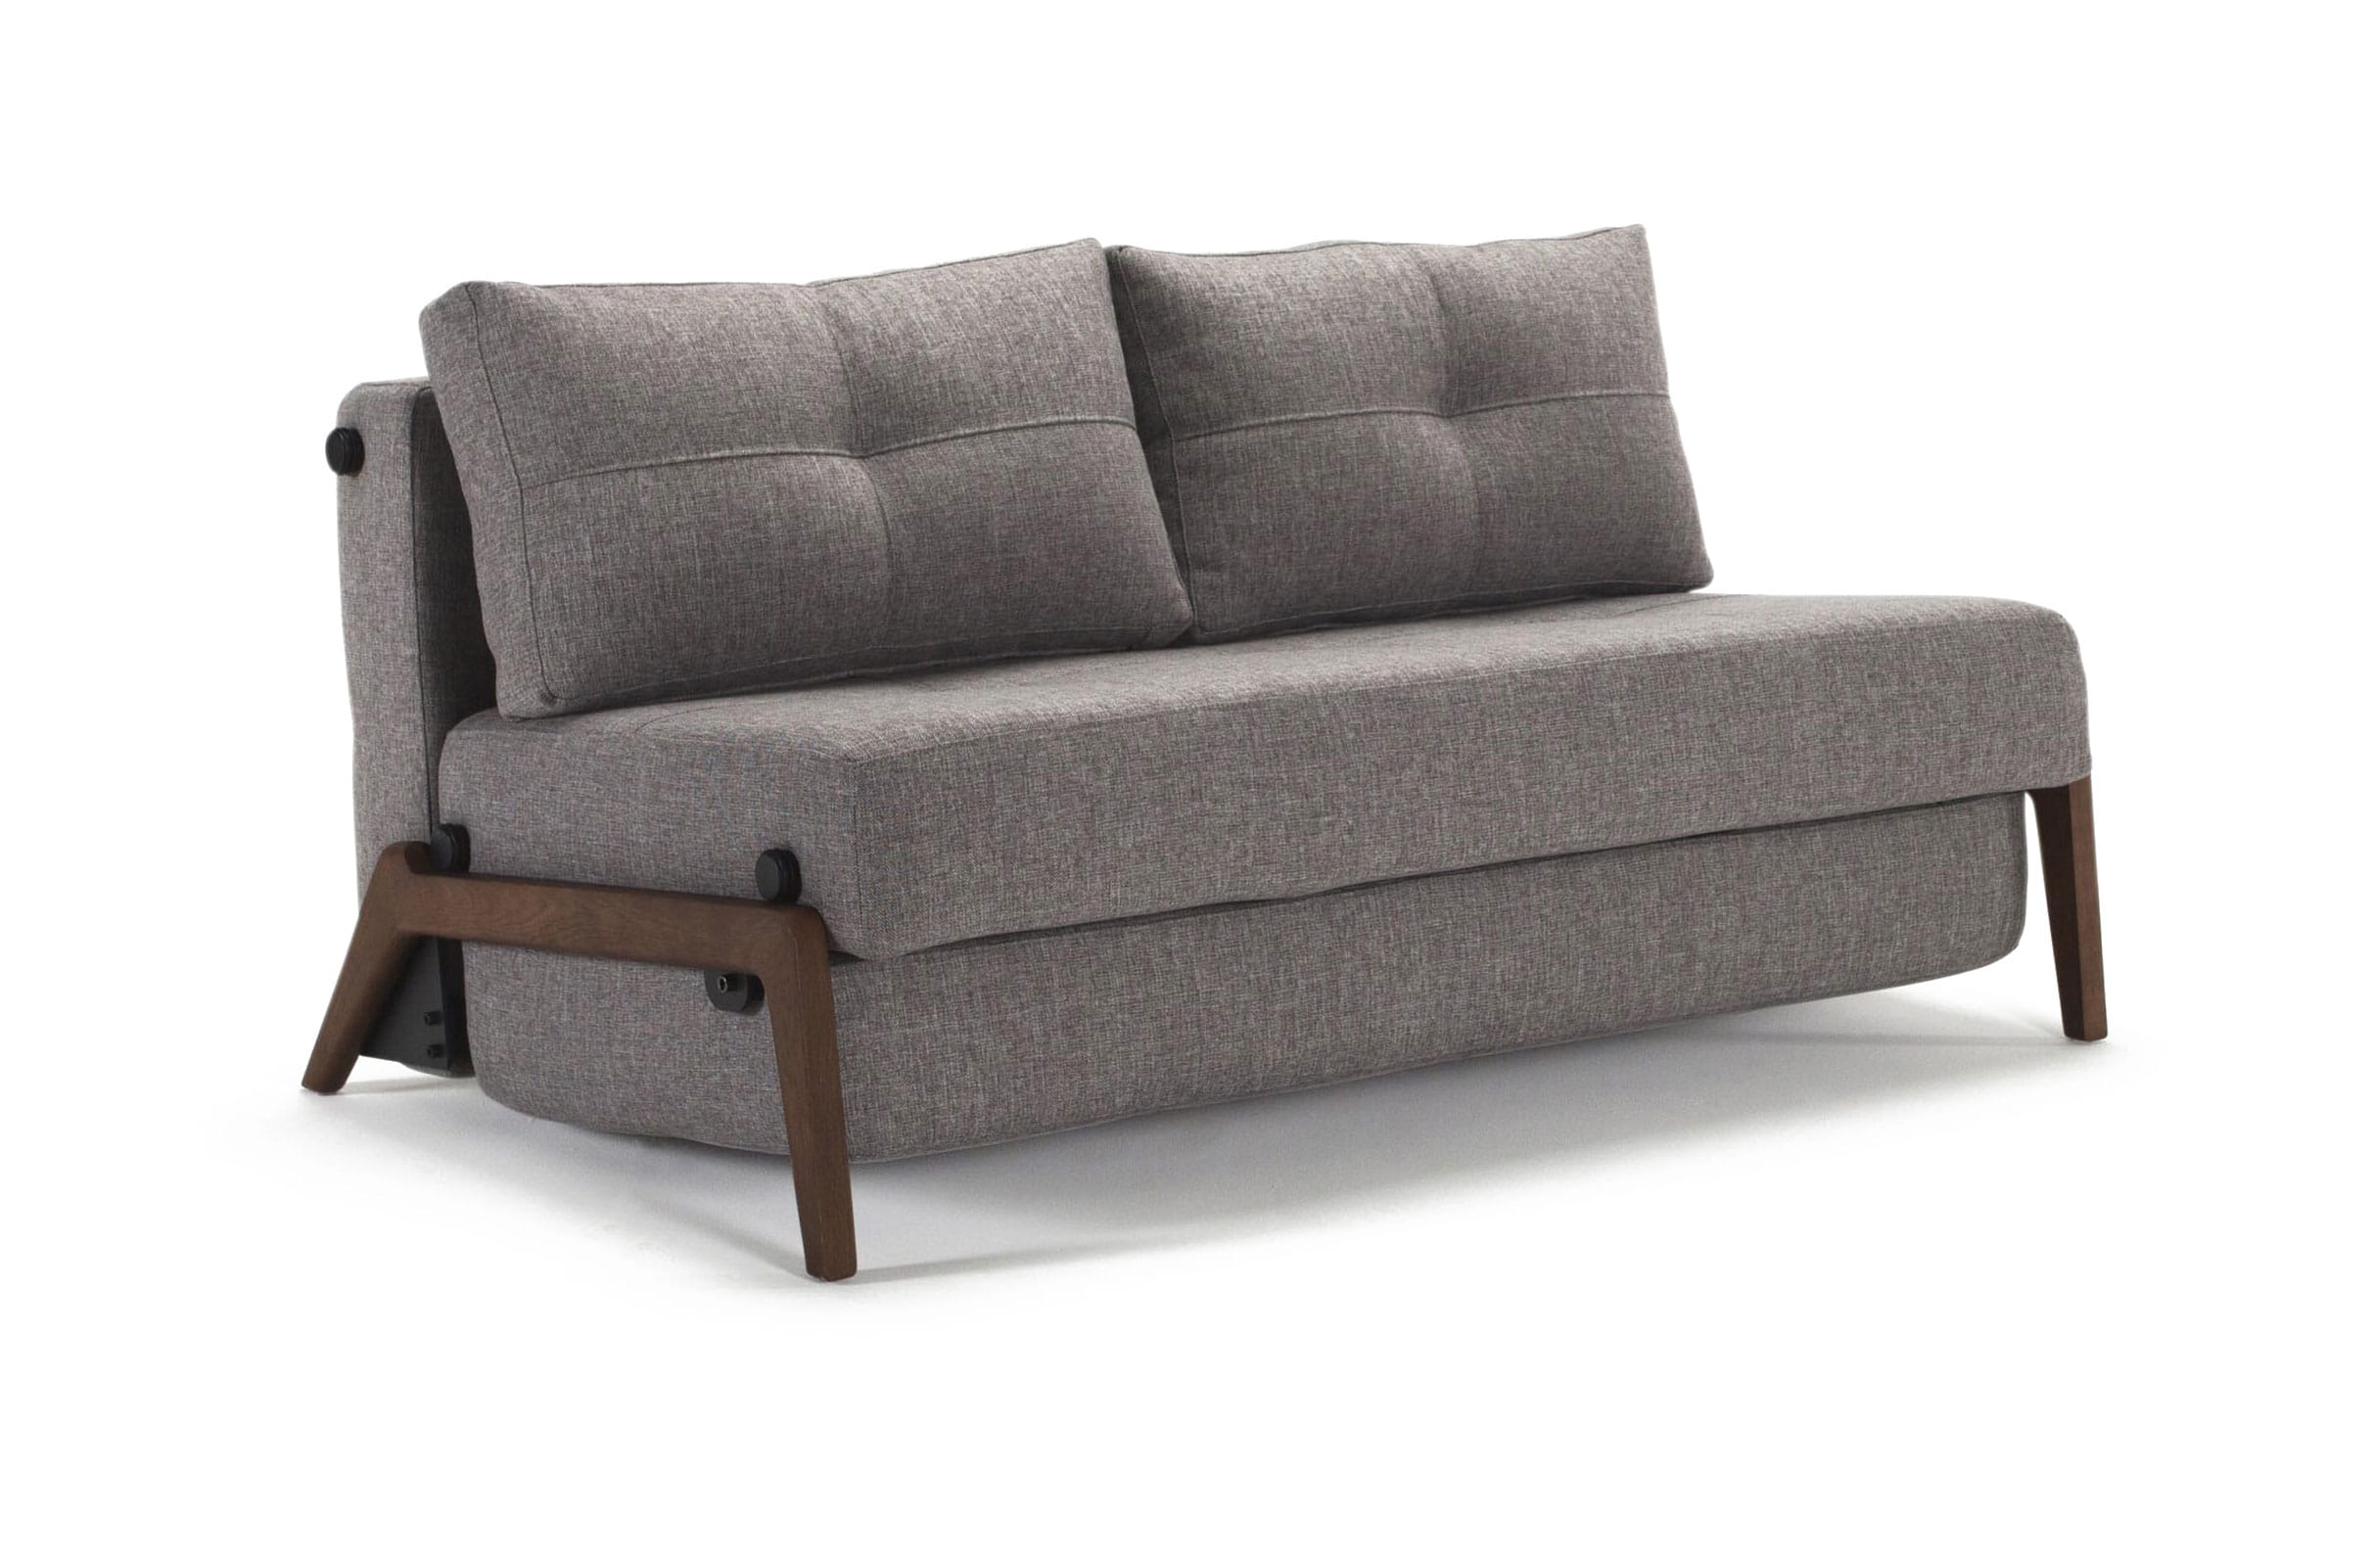 Cubed deluxe sofa bed queen size mixed dance gray by Queen size sofa bed